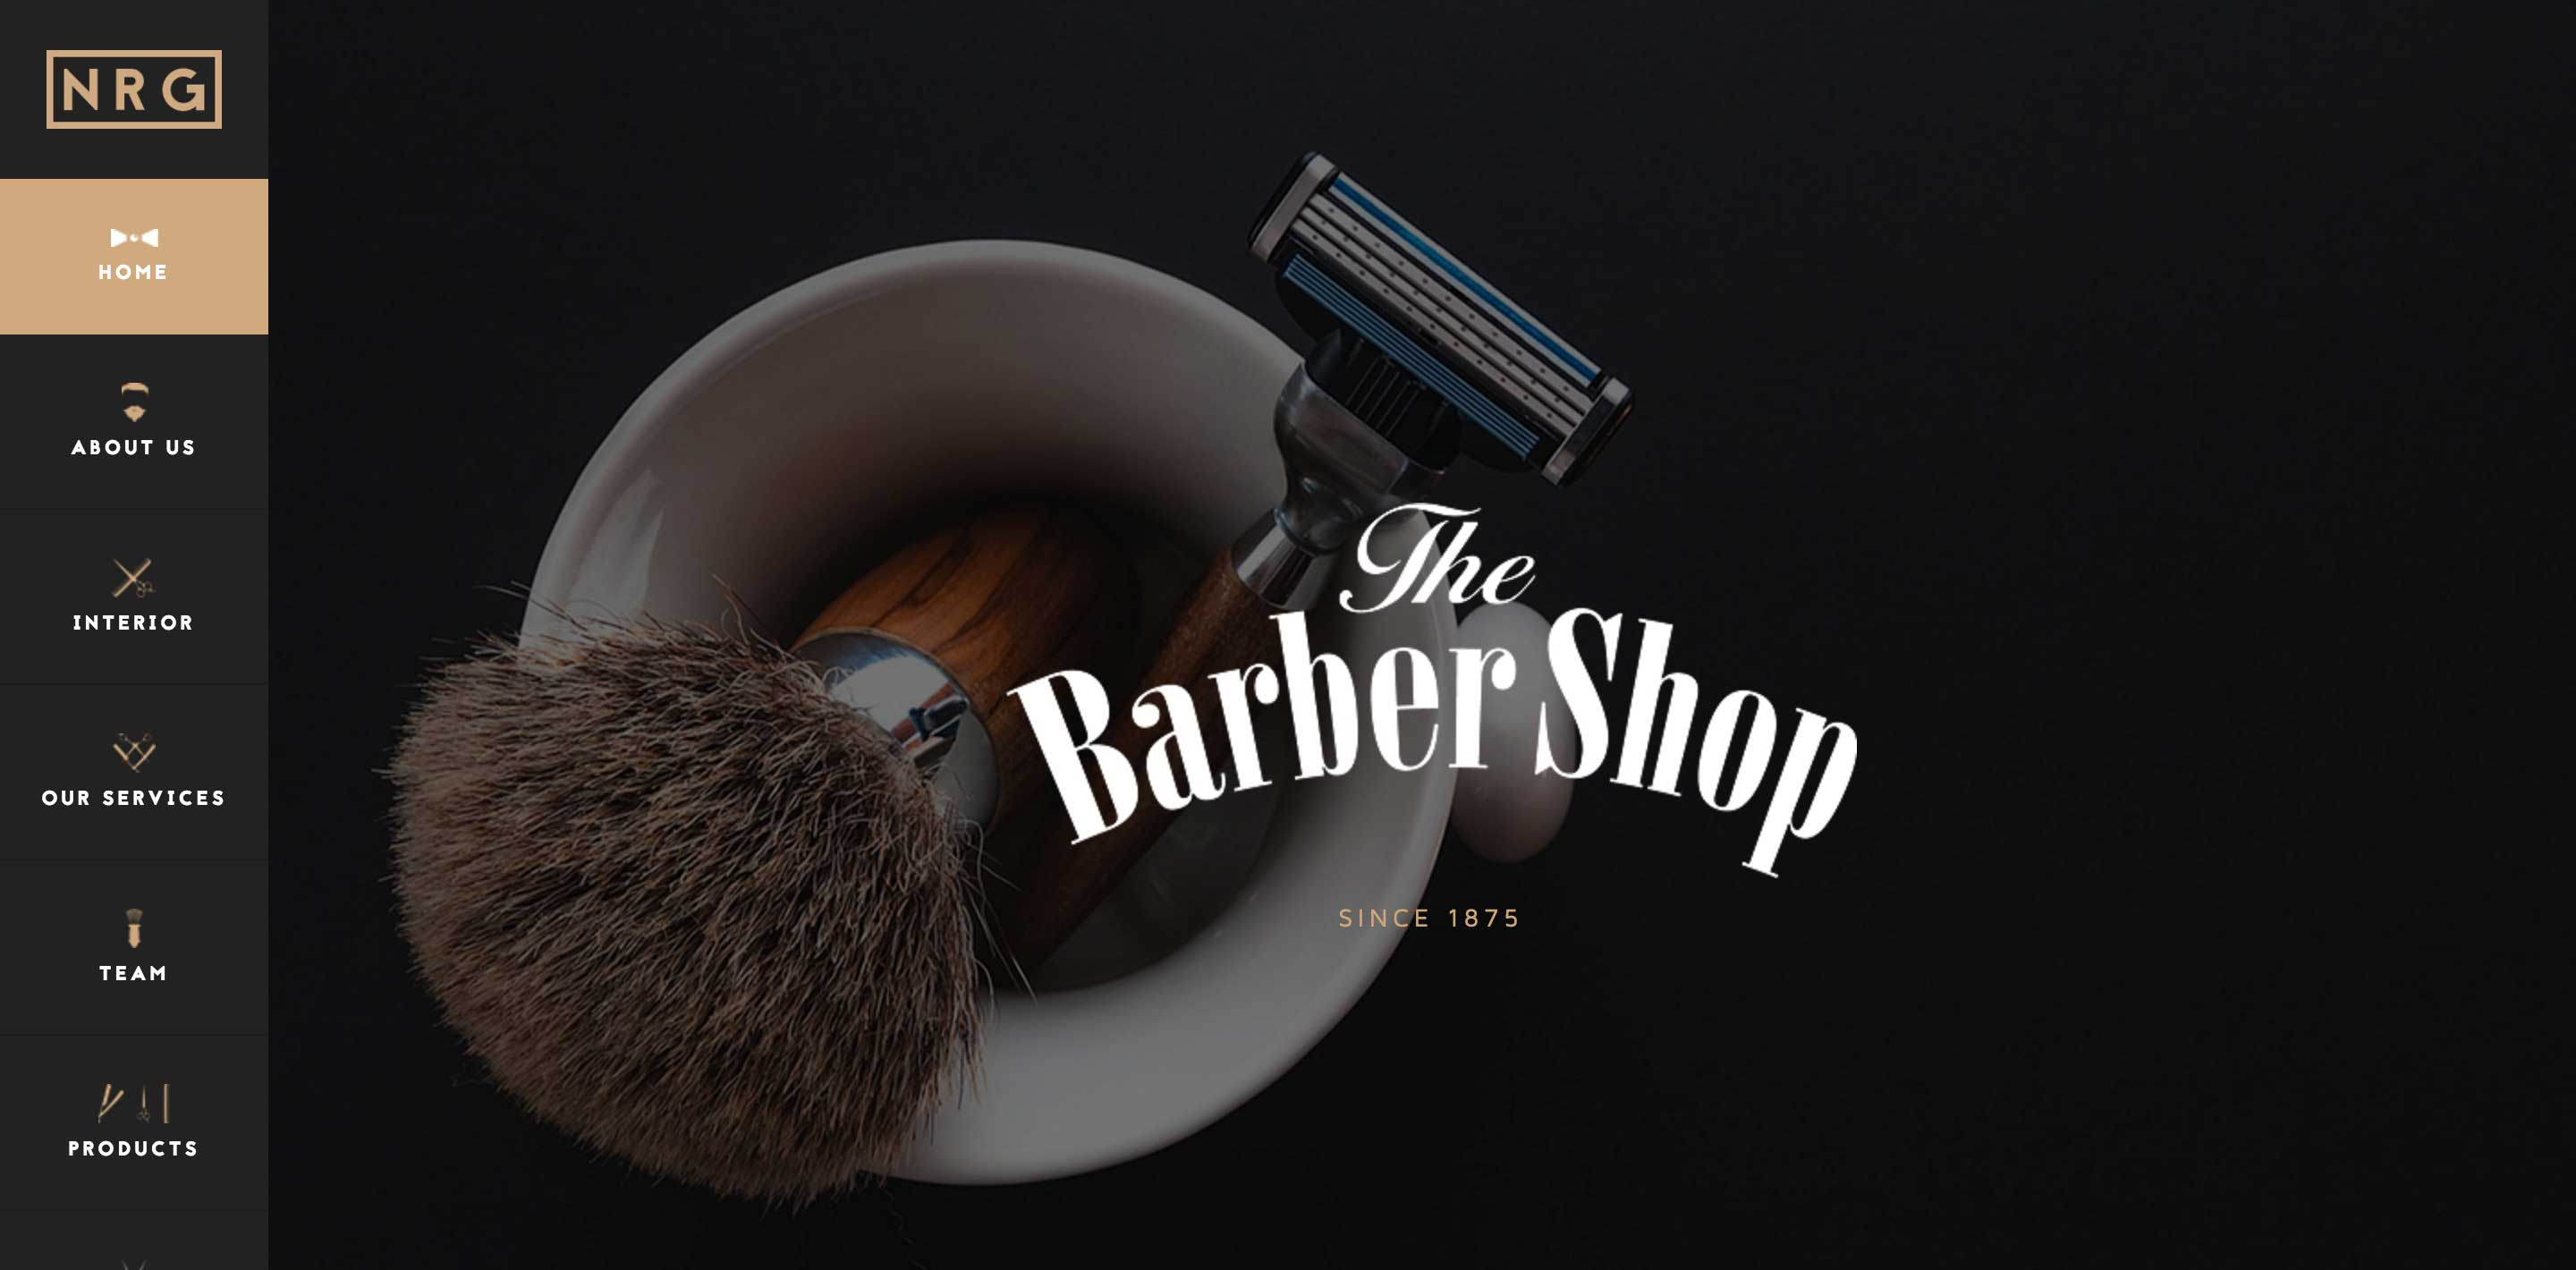 nrg barber shop one page wordpress themes